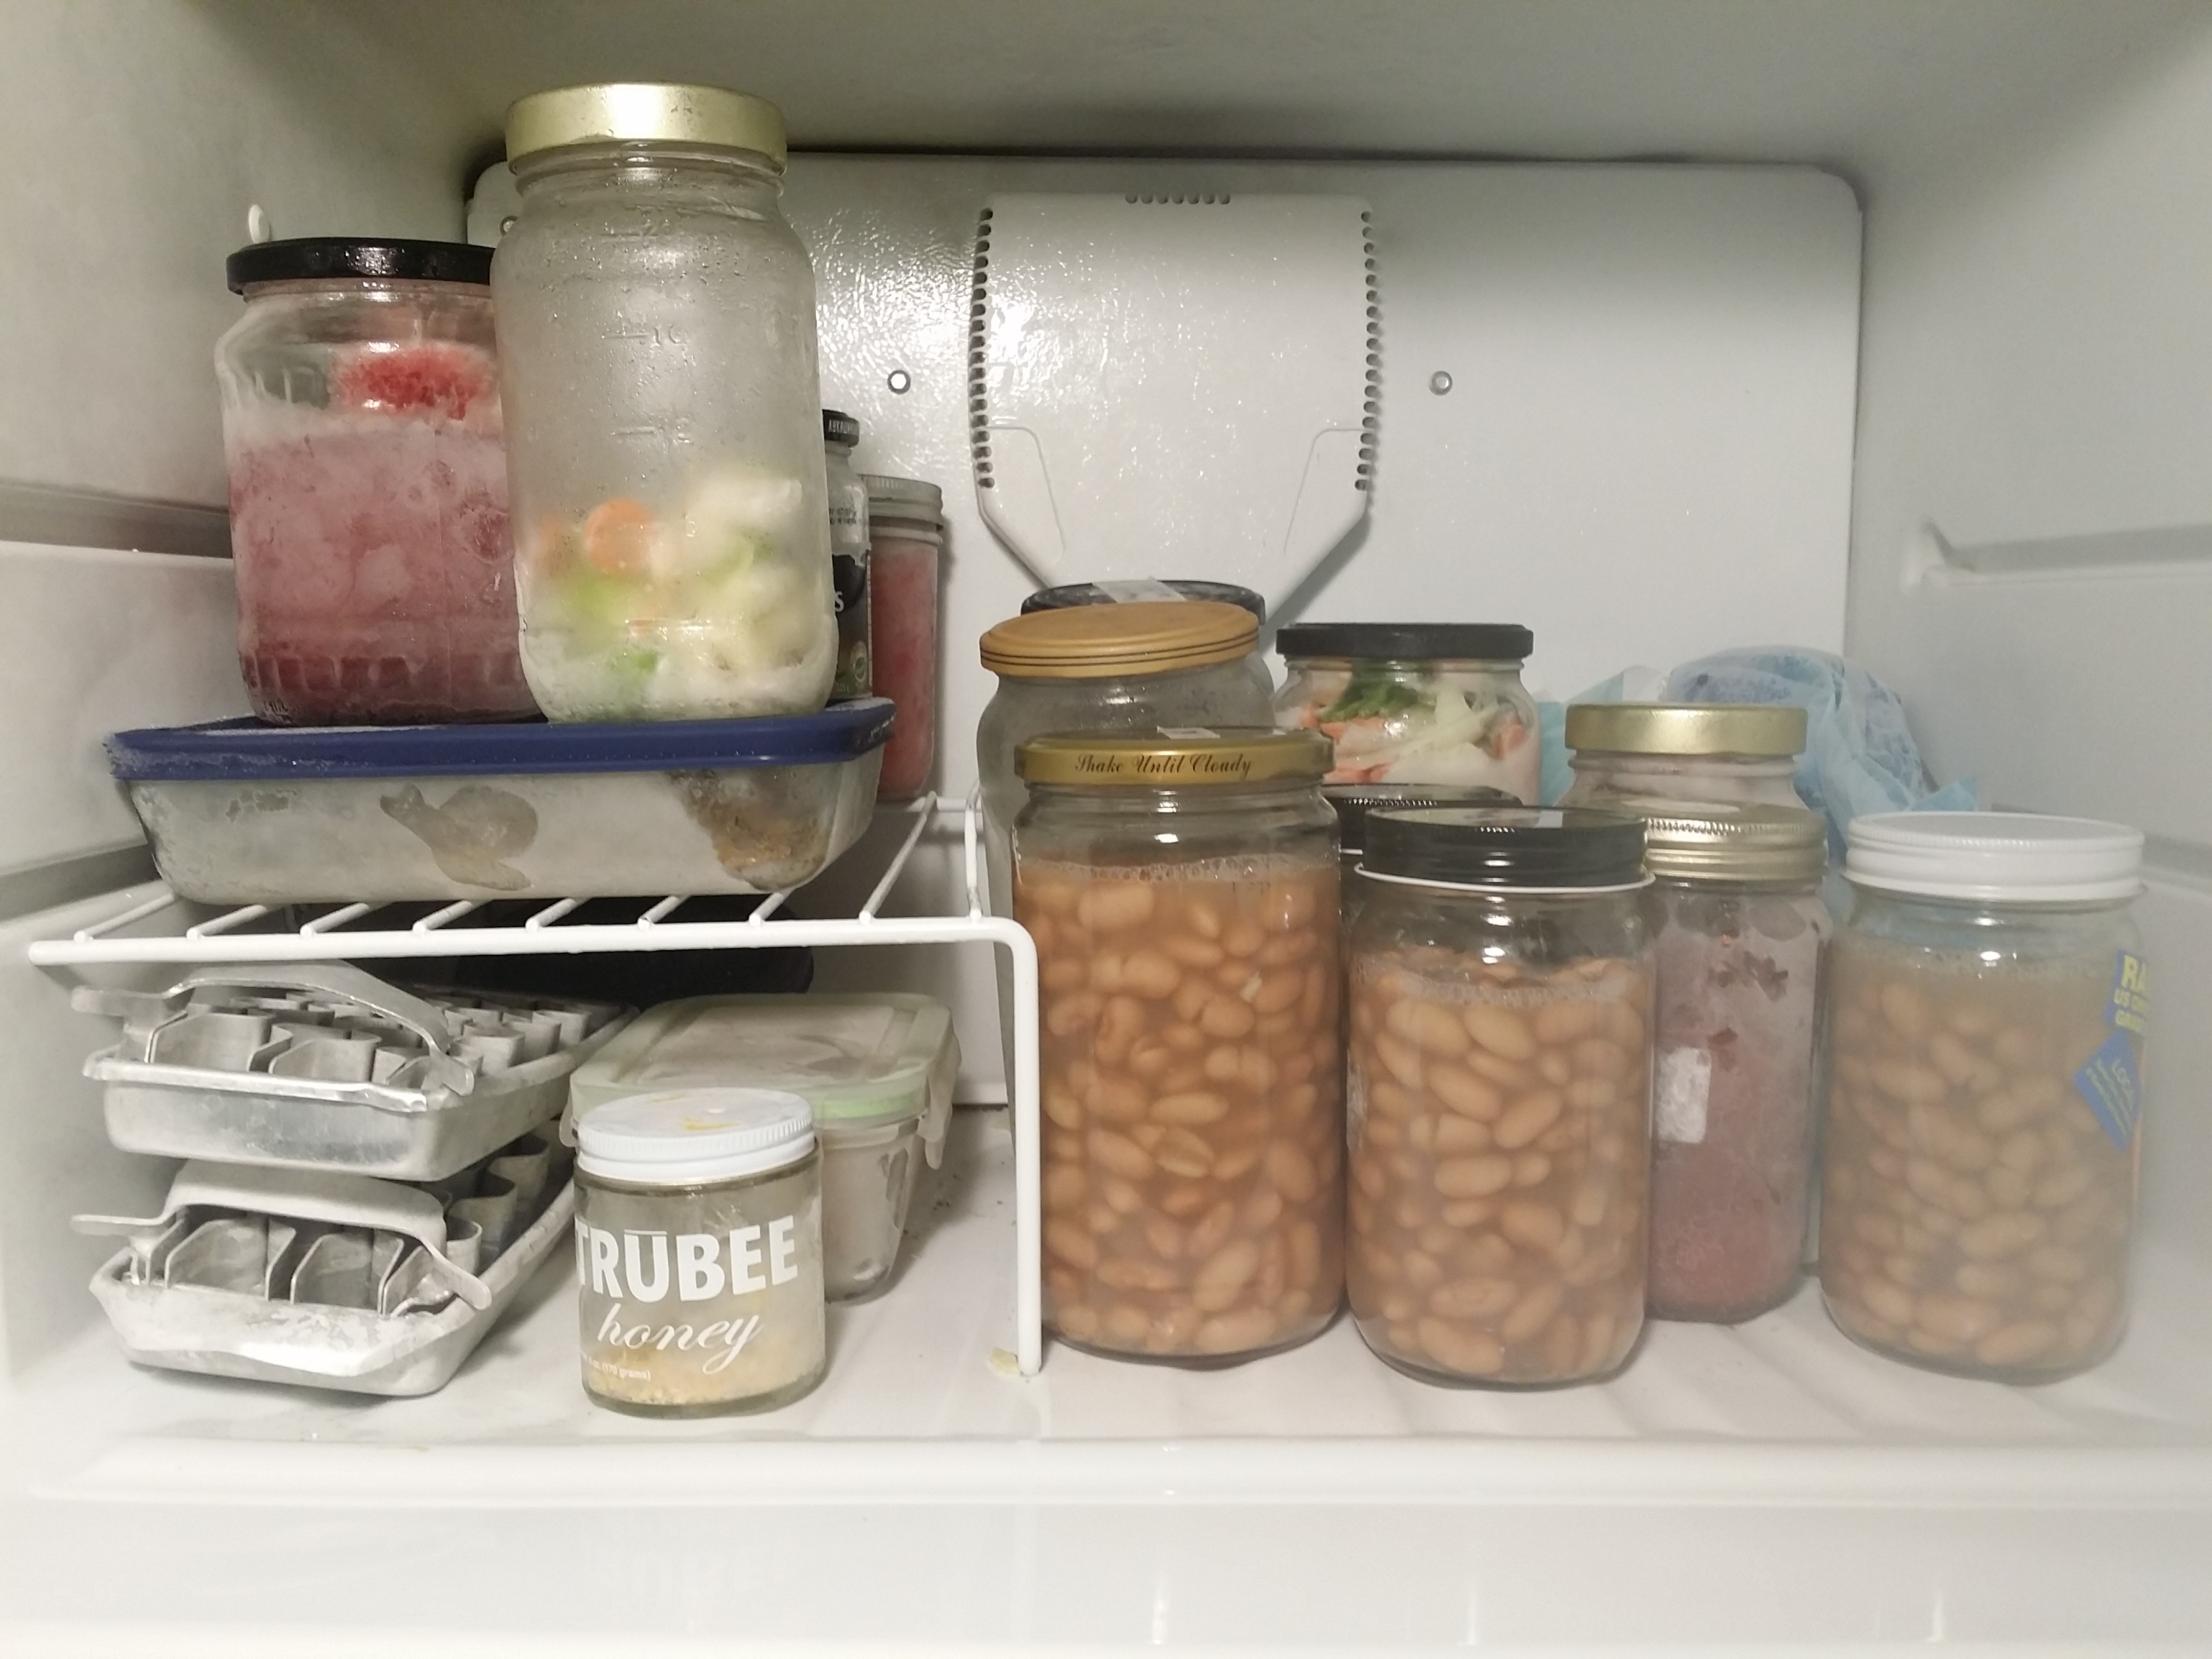 Beans freezing on the right-hand side & How to Freeze Food Without Using Plastic - The Zero-Waste Chef